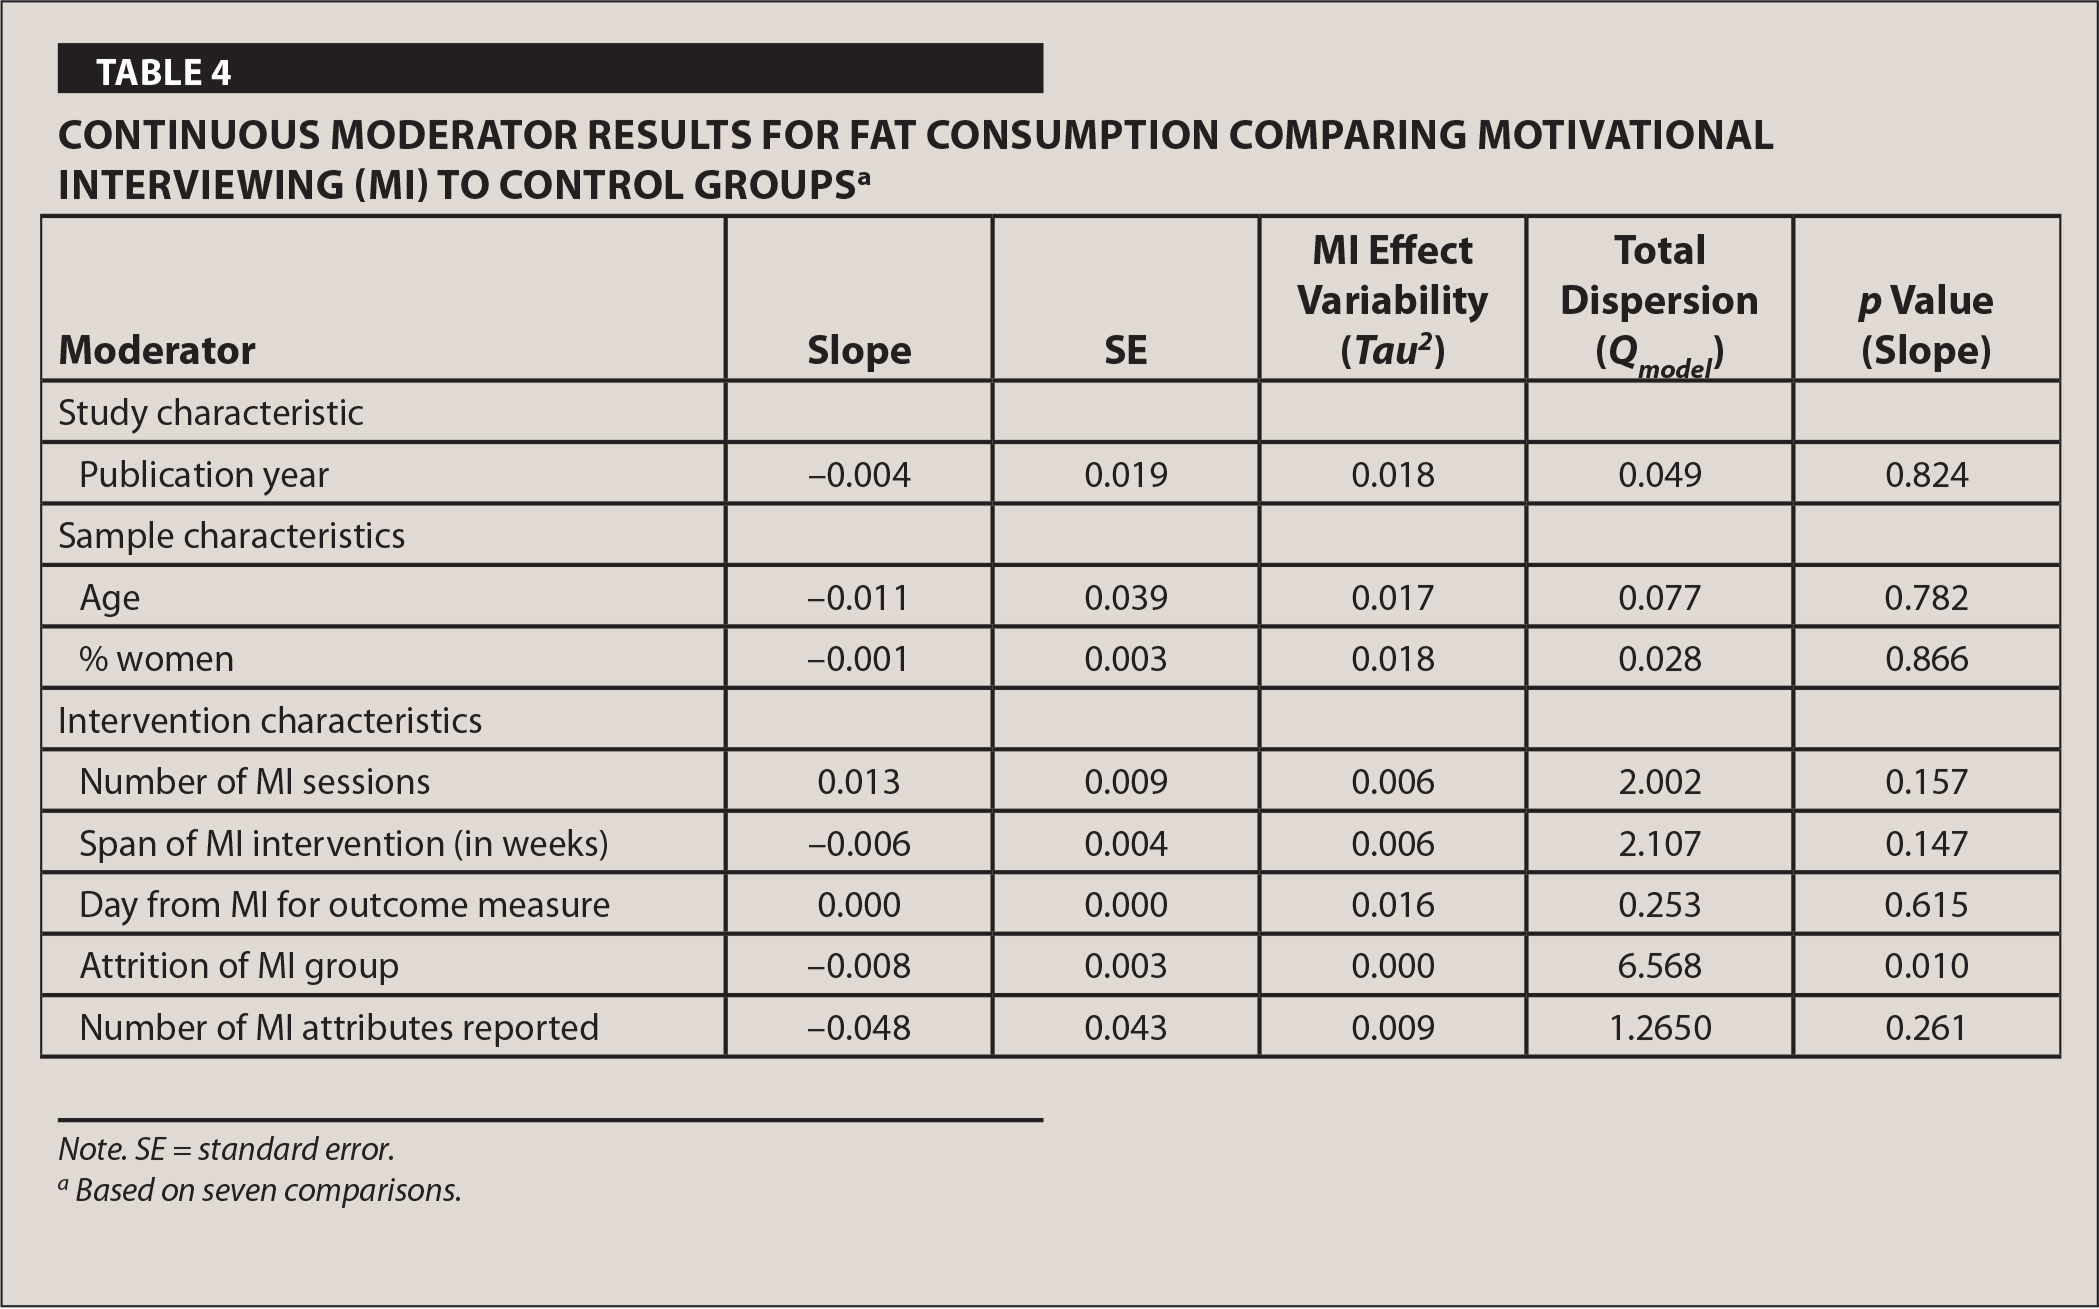 Continuous Moderator Results for Fat Consumption Comparing Motivational Interviewing (MI) to Control Groupsa